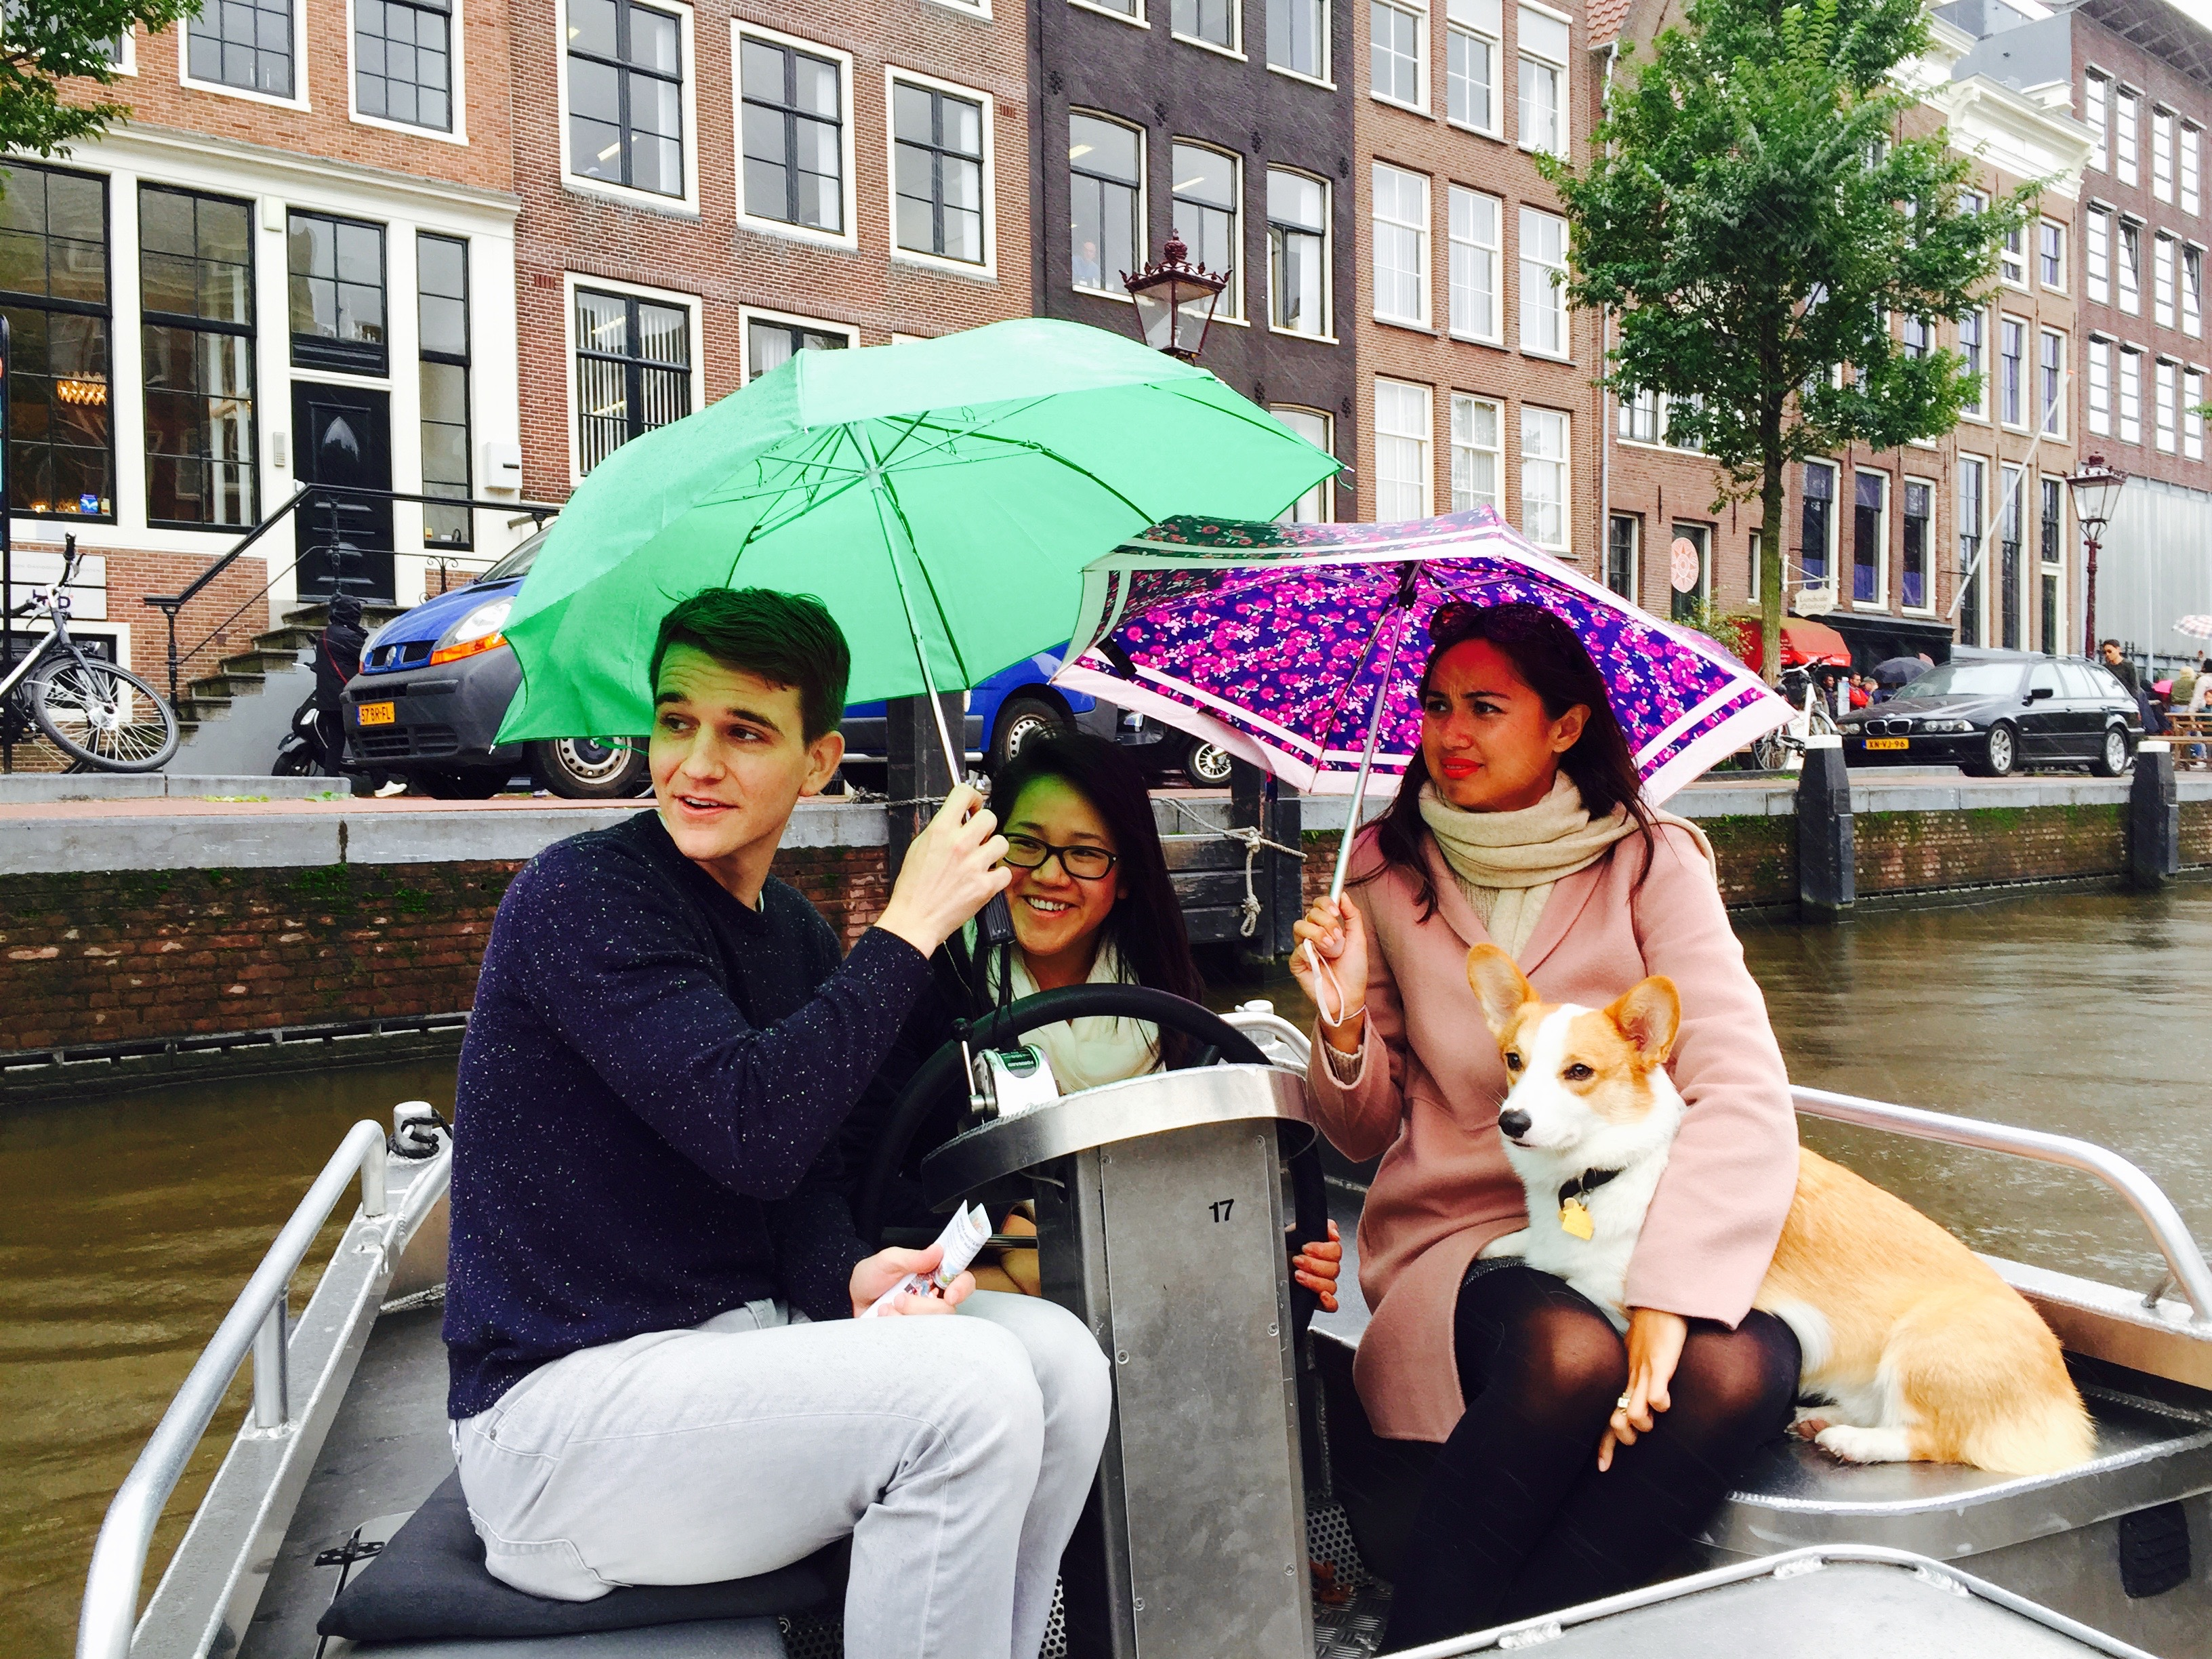 Luckily I had a scarf on my head. What to do in Amsterdam.